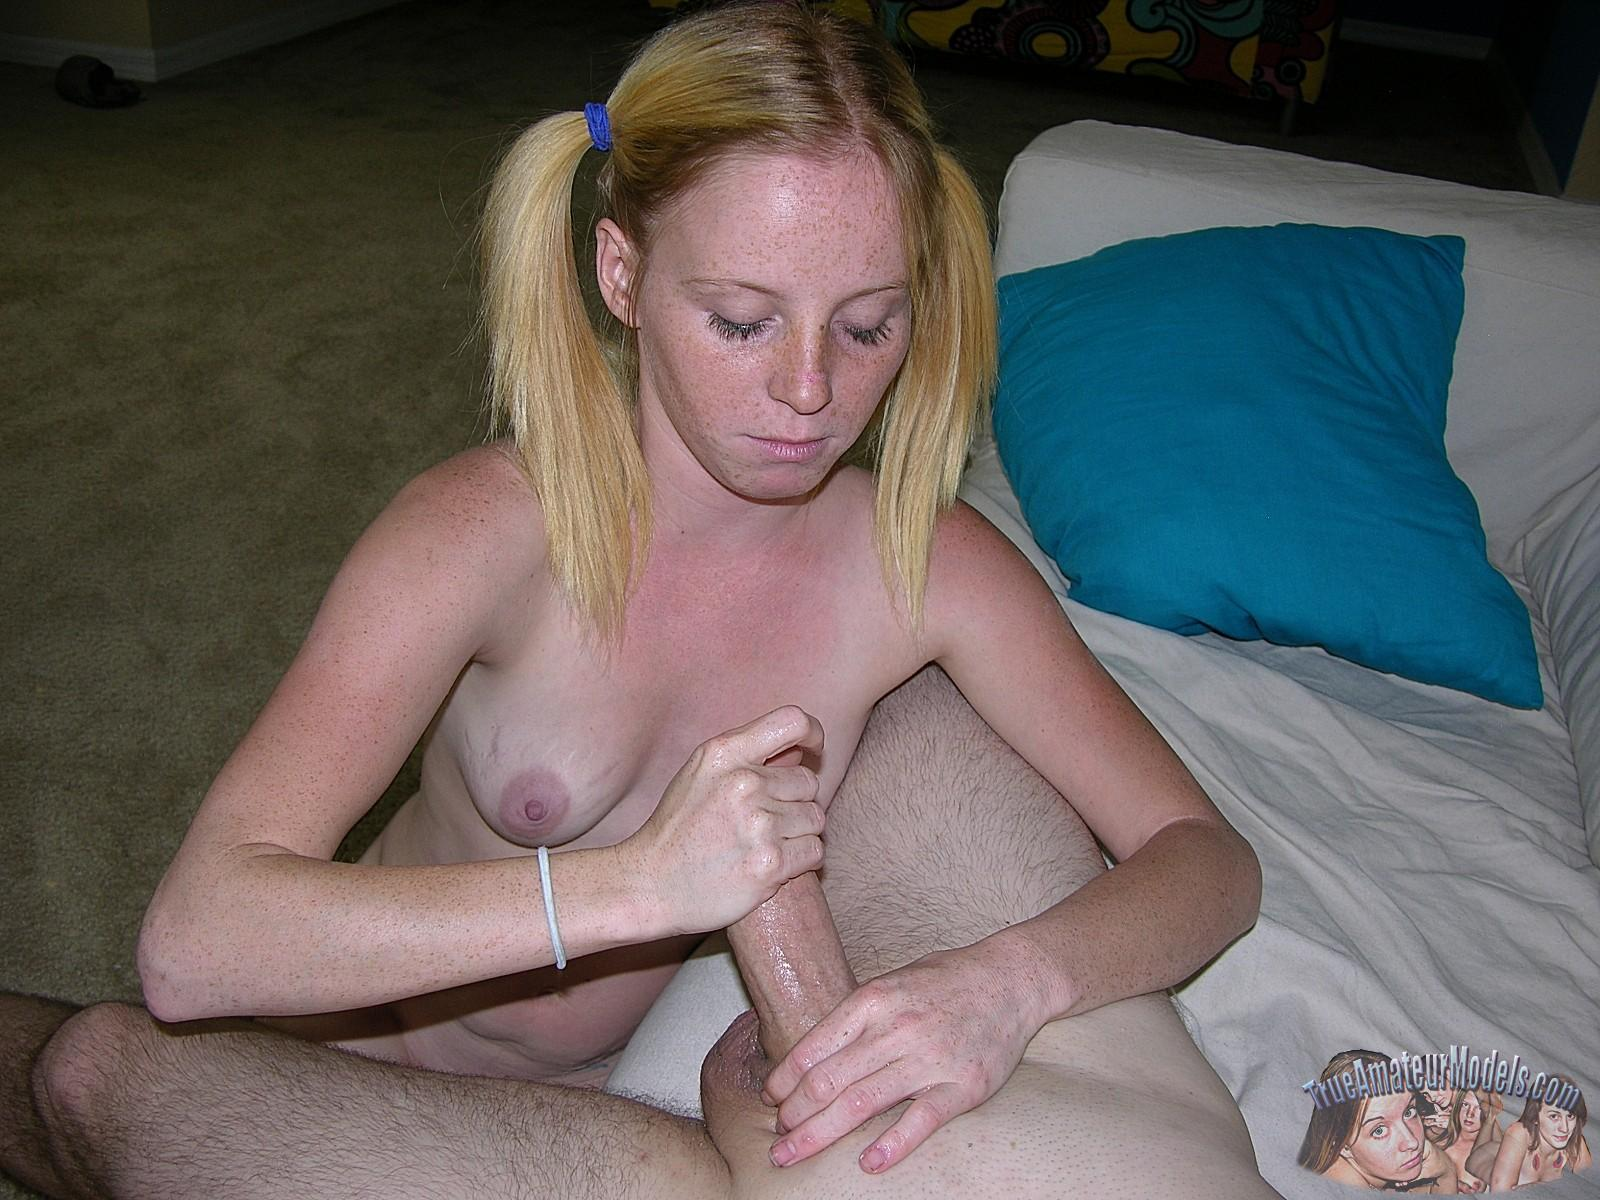 Erotic Pictures Toys fisting pissing pussy